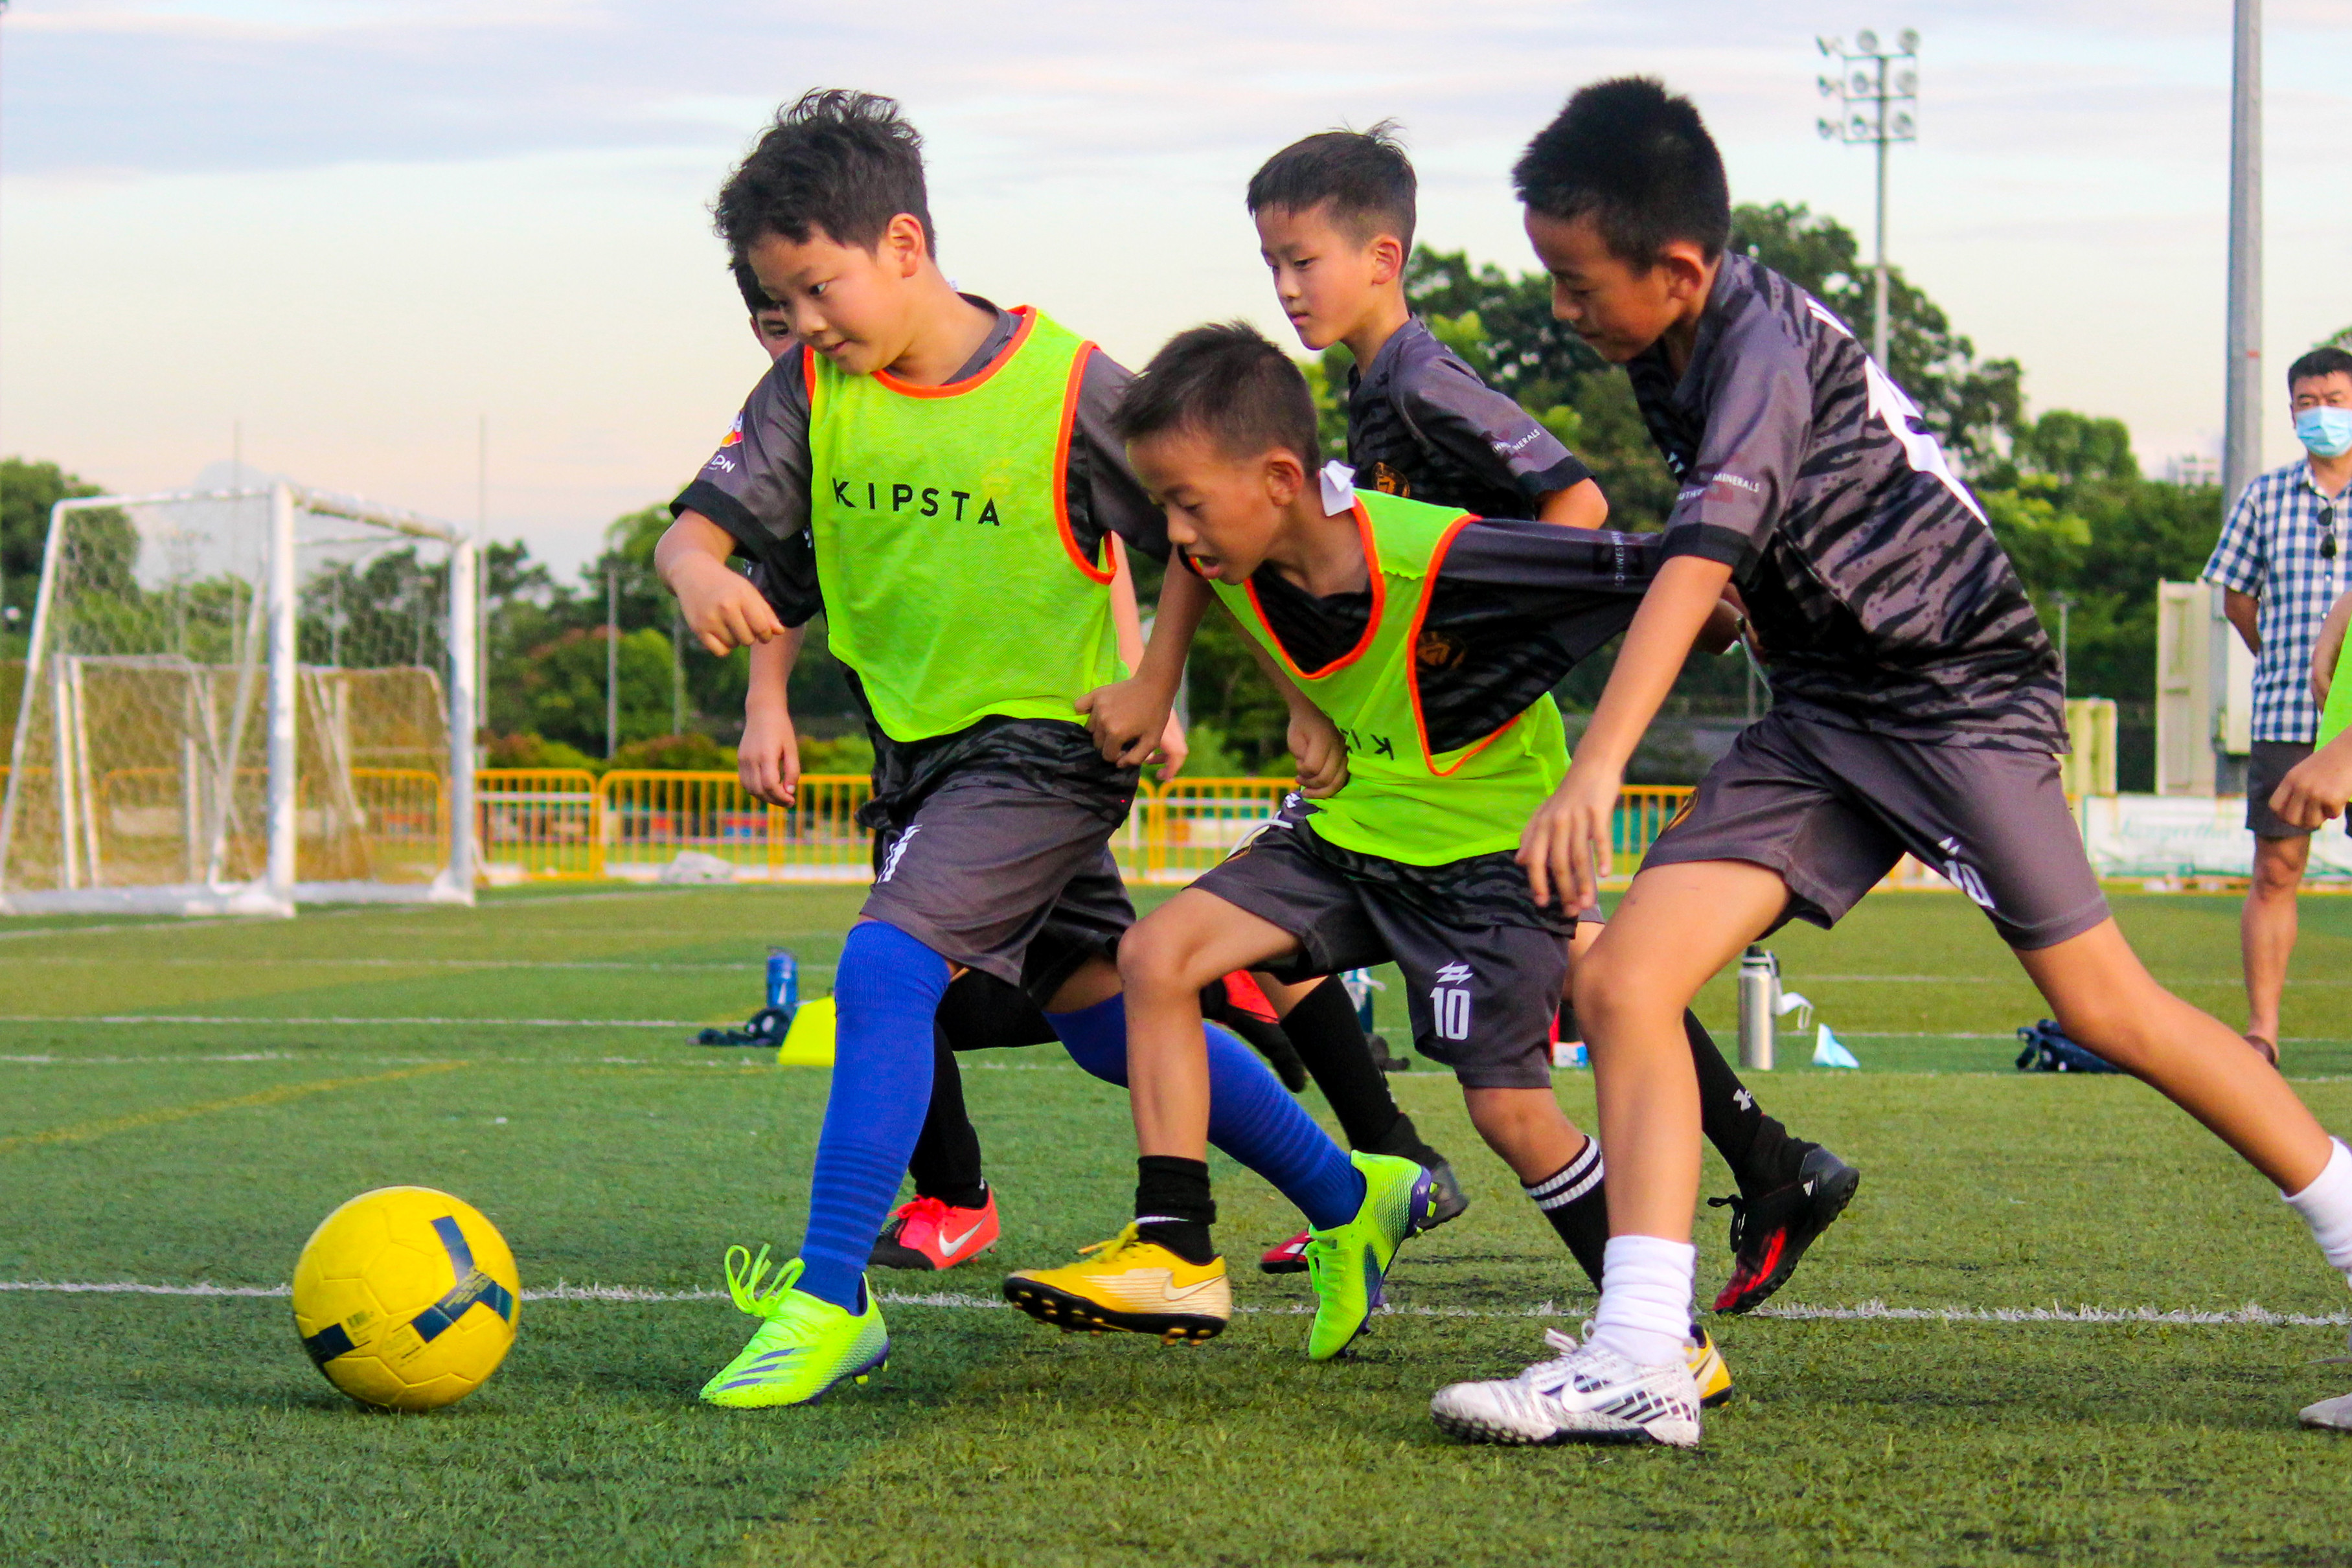 Players Under 14 Years Old